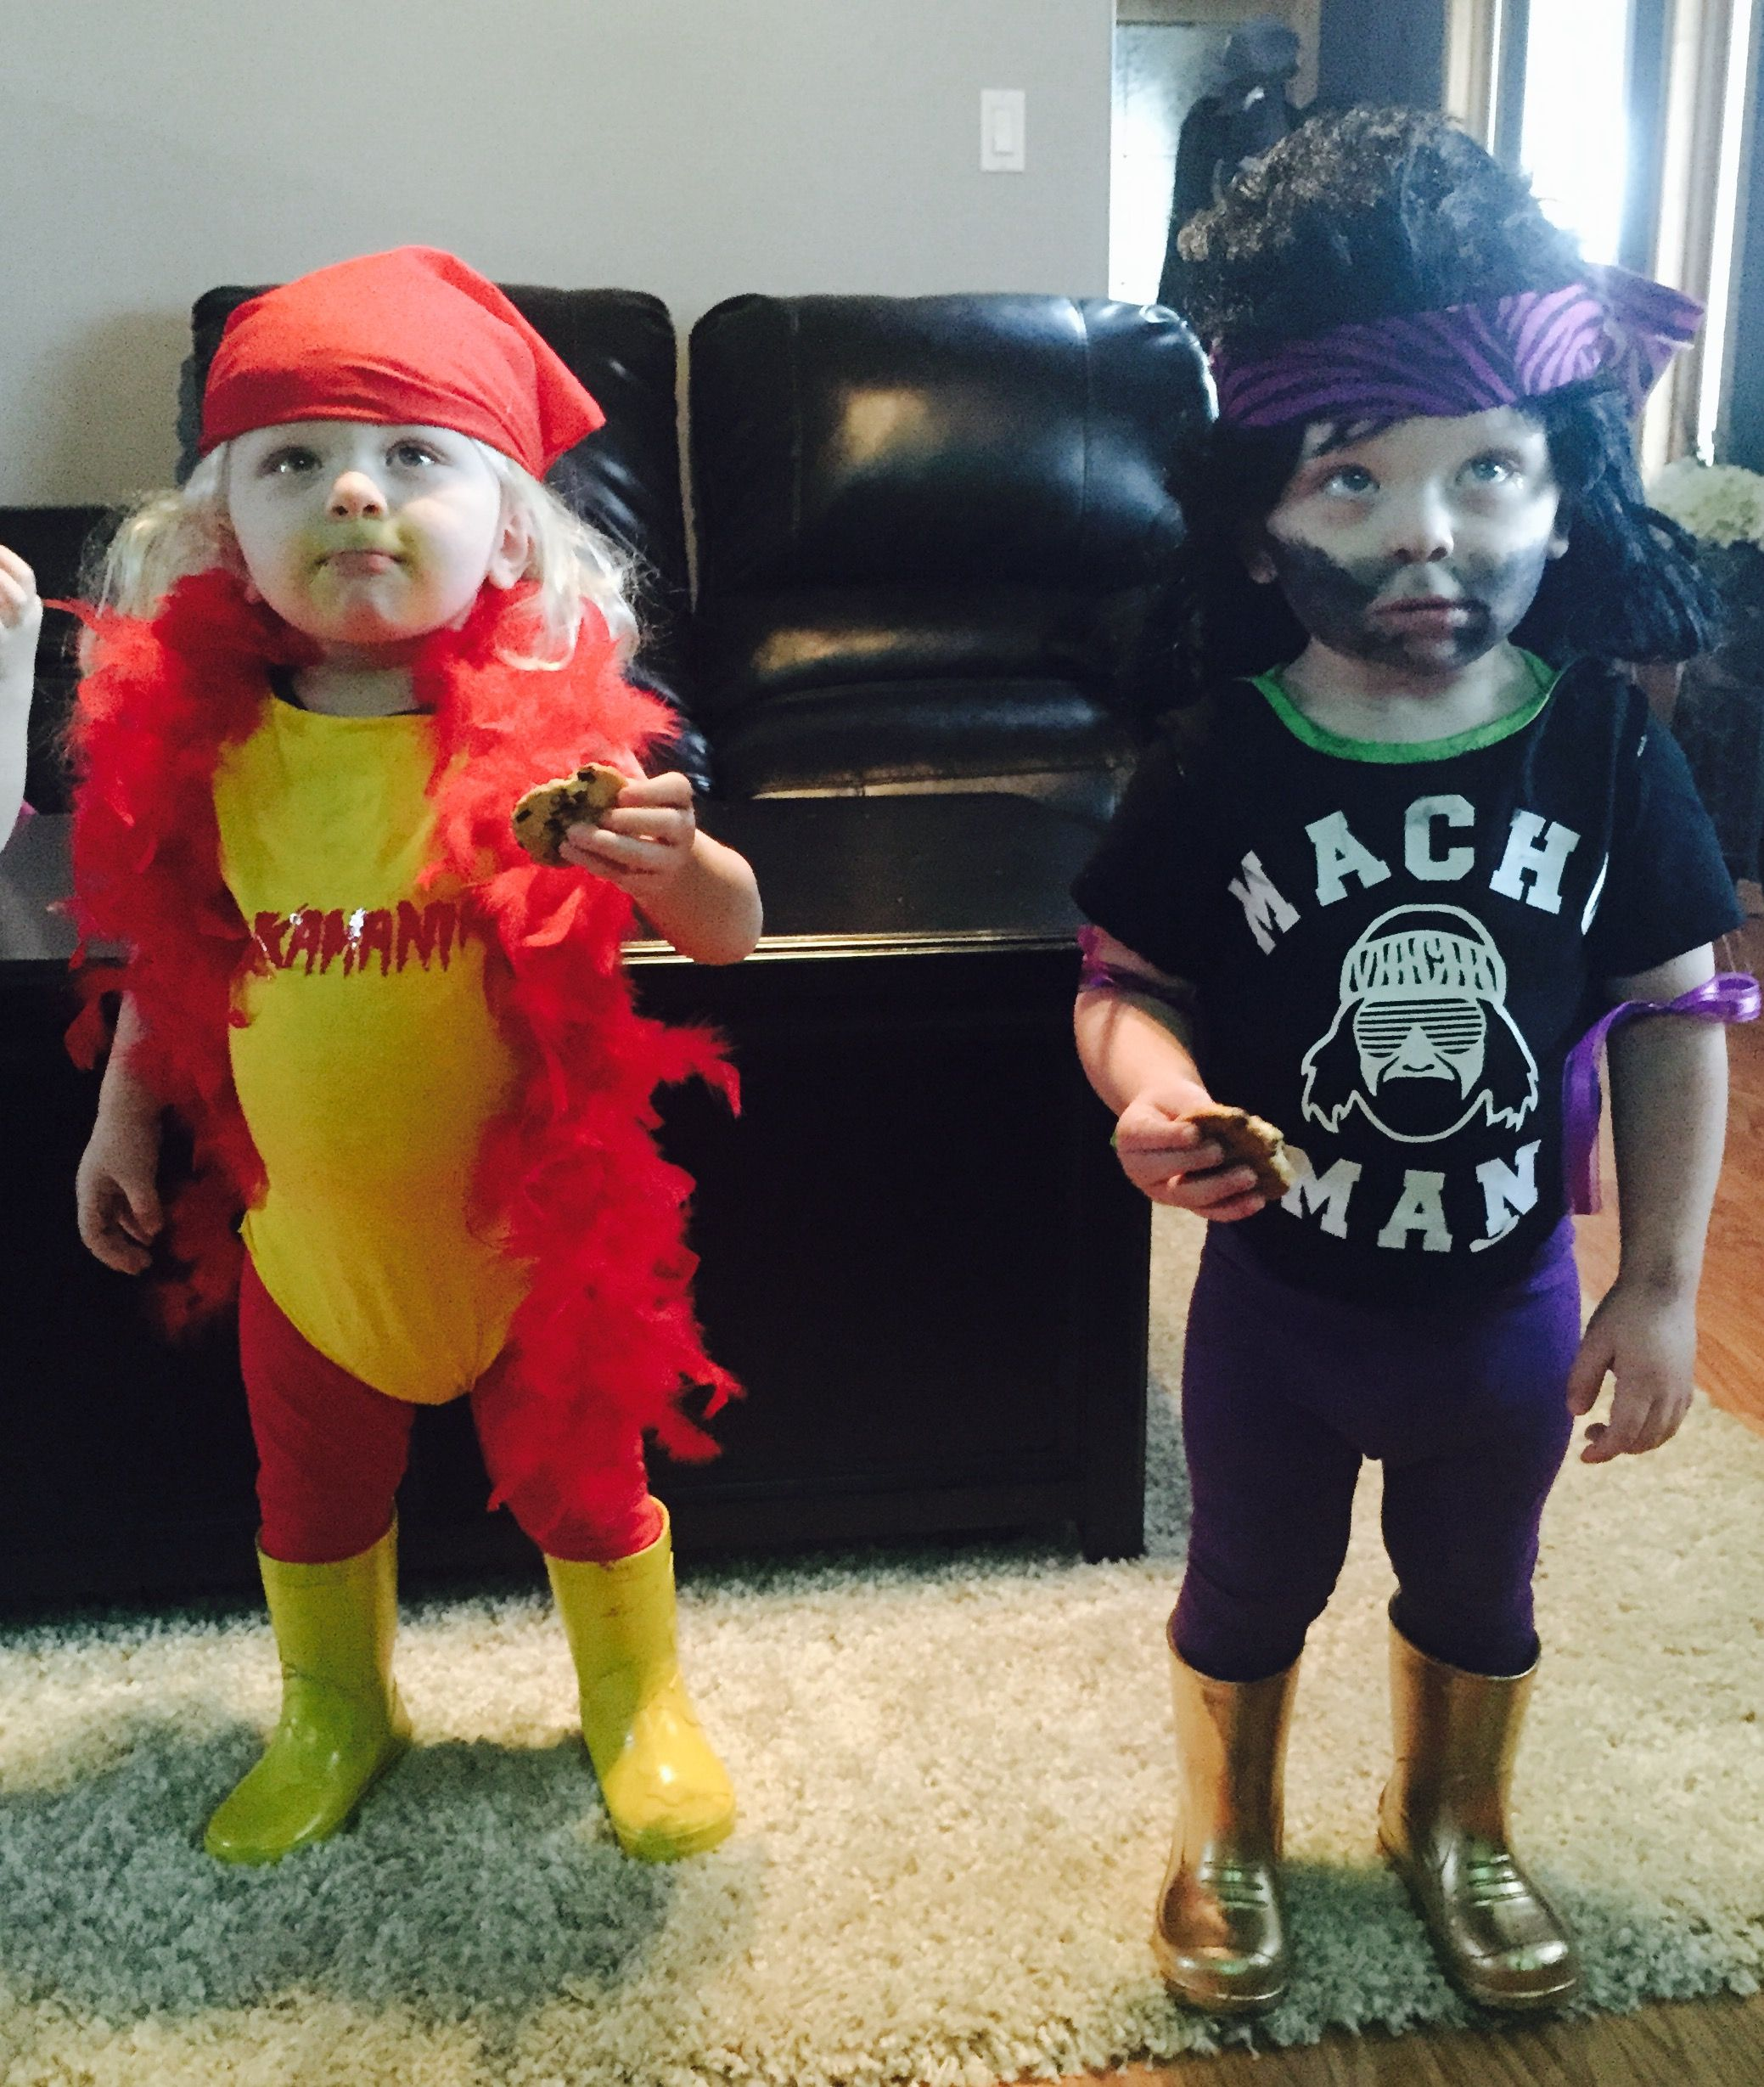 Hulk Hogan & Macho Man Randy Savage twin costume